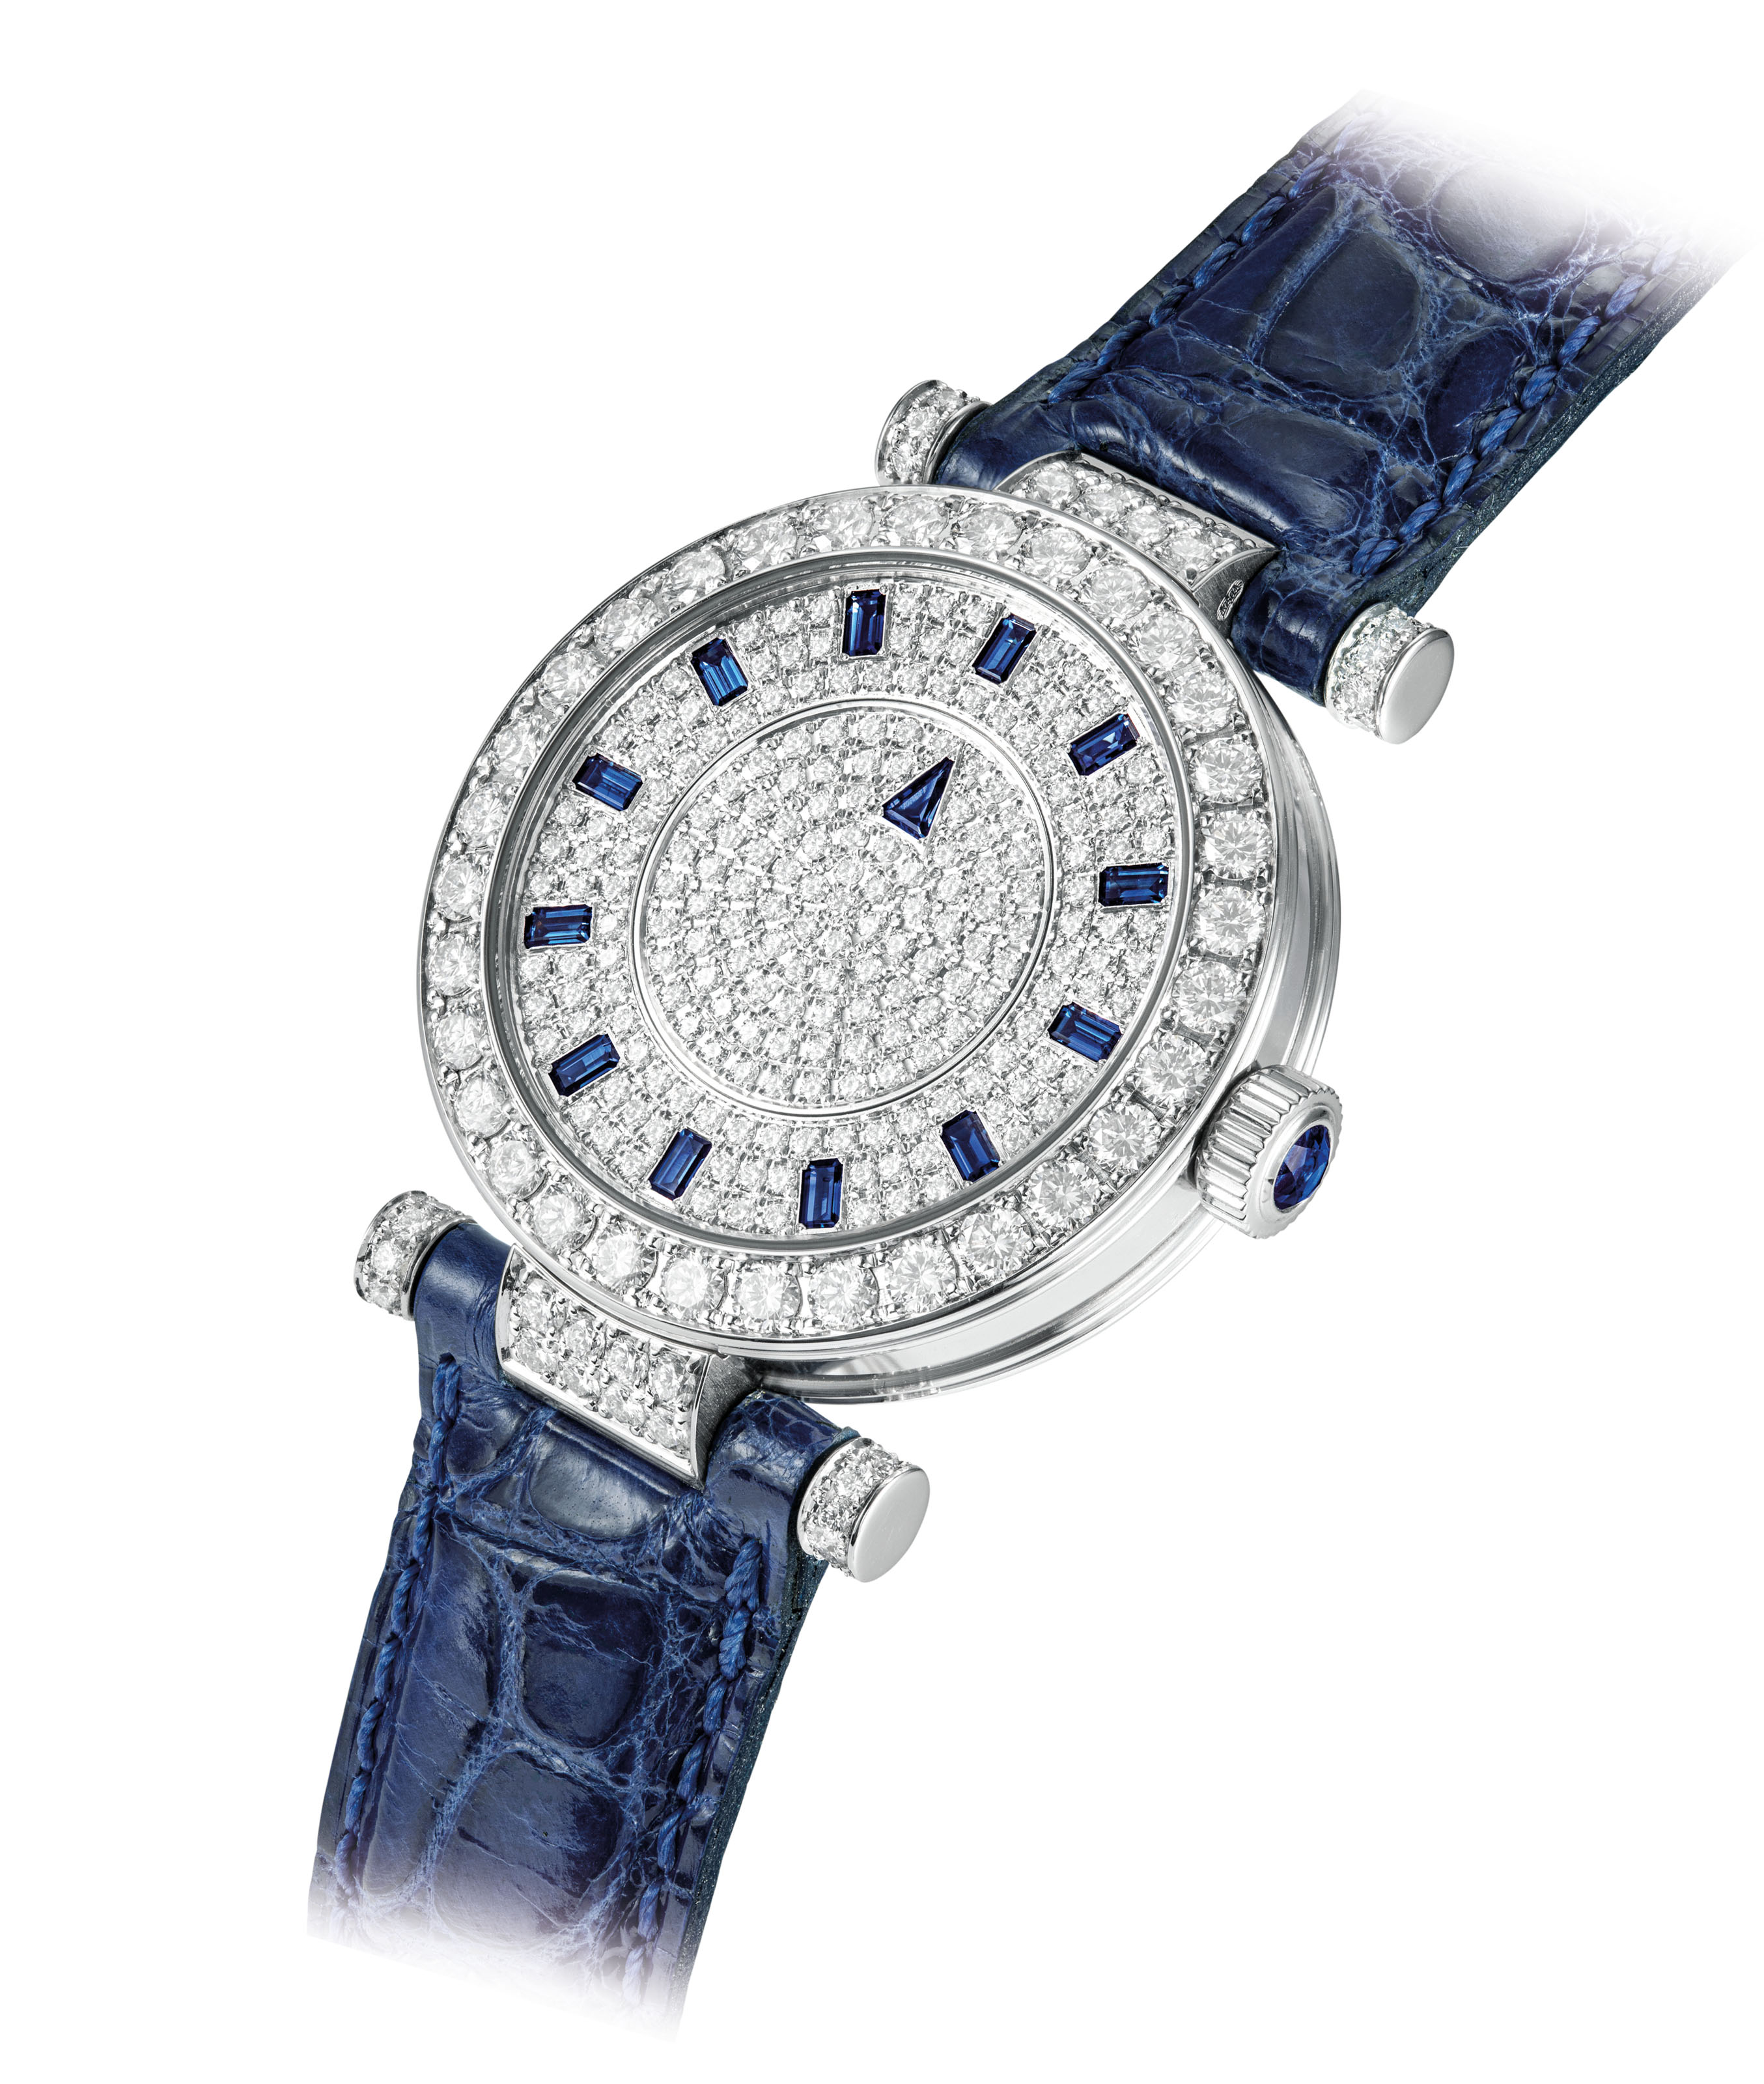 FRANCK MULLER. A LADY ' S FINE 18K WHITE GOLD, DIAMOND AND SAPPHIRE-SET...